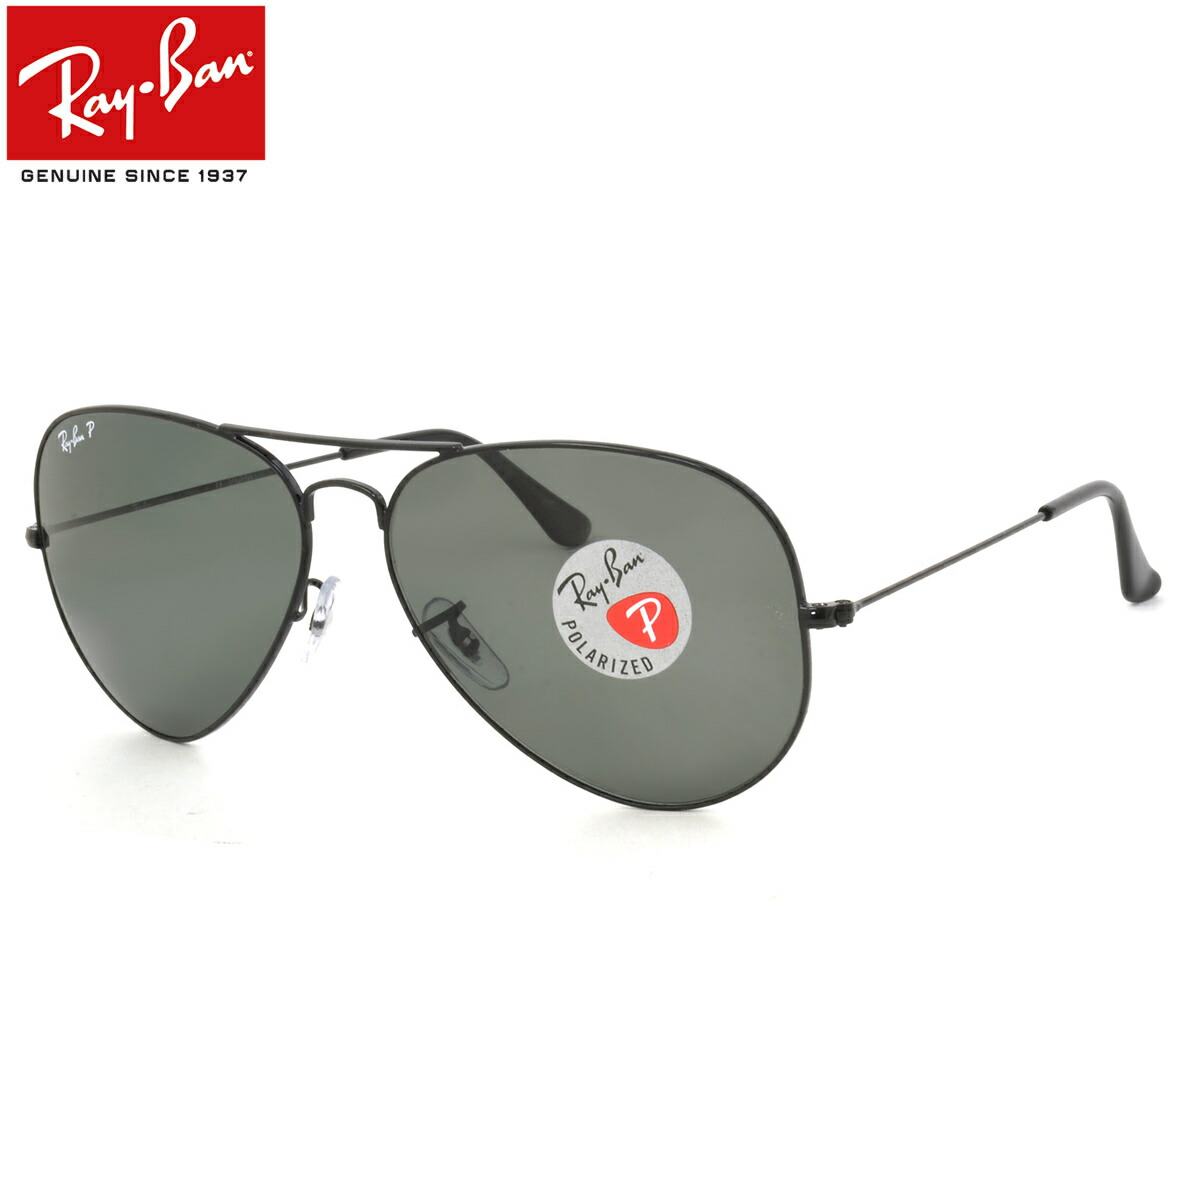 648d22a902 Ray Ban Rb3025 002 58